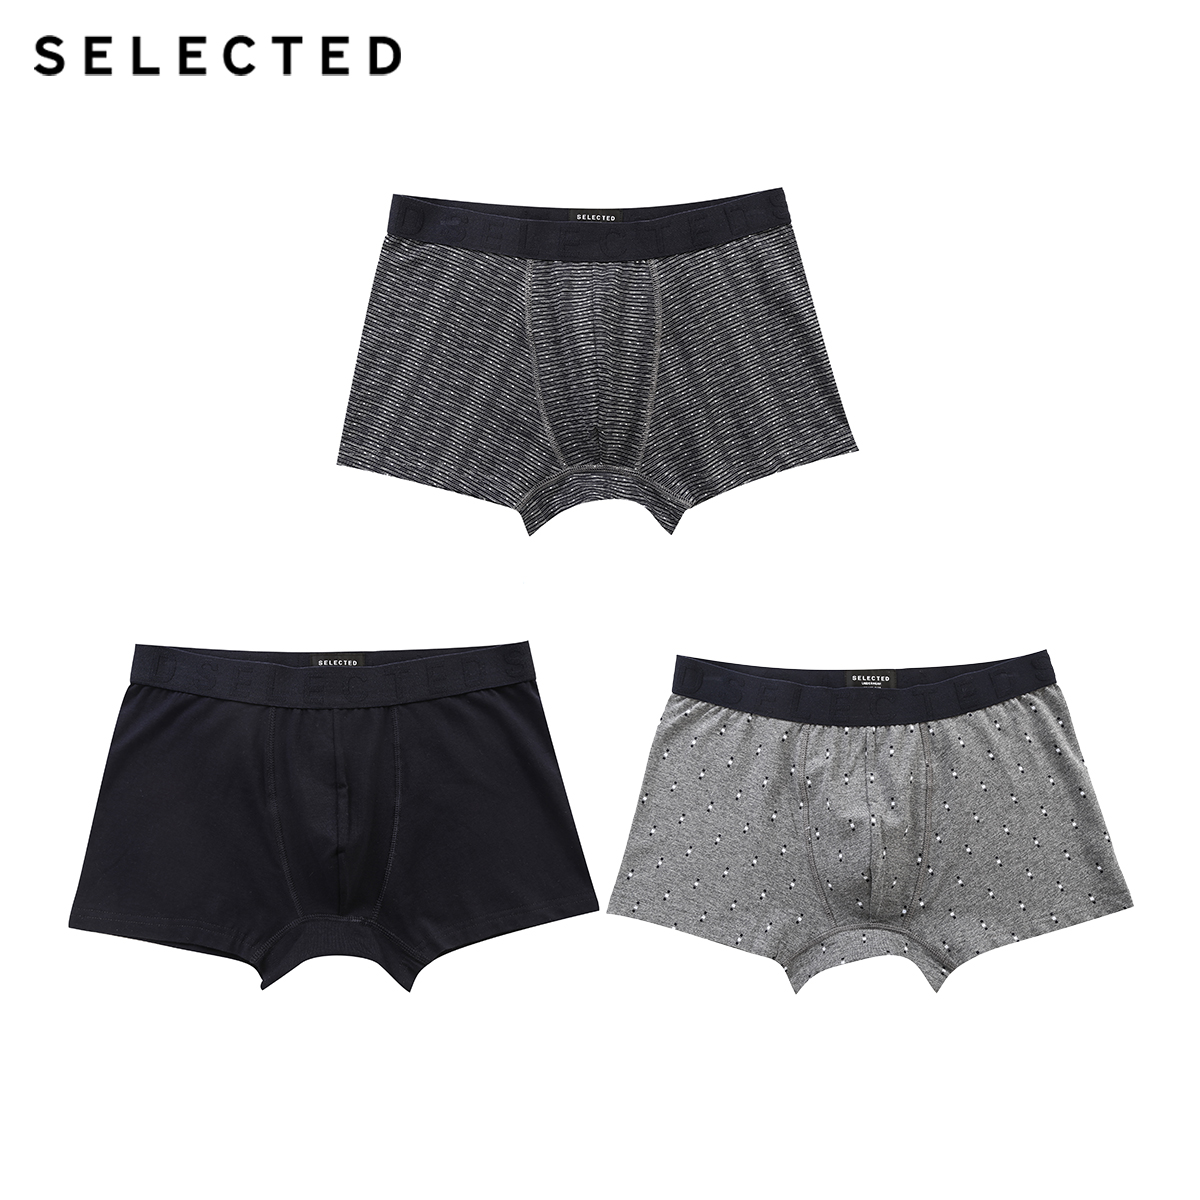 SELECTED Men's Stretch Cotton Printed 3-pack Boxer Shorts A|419192503